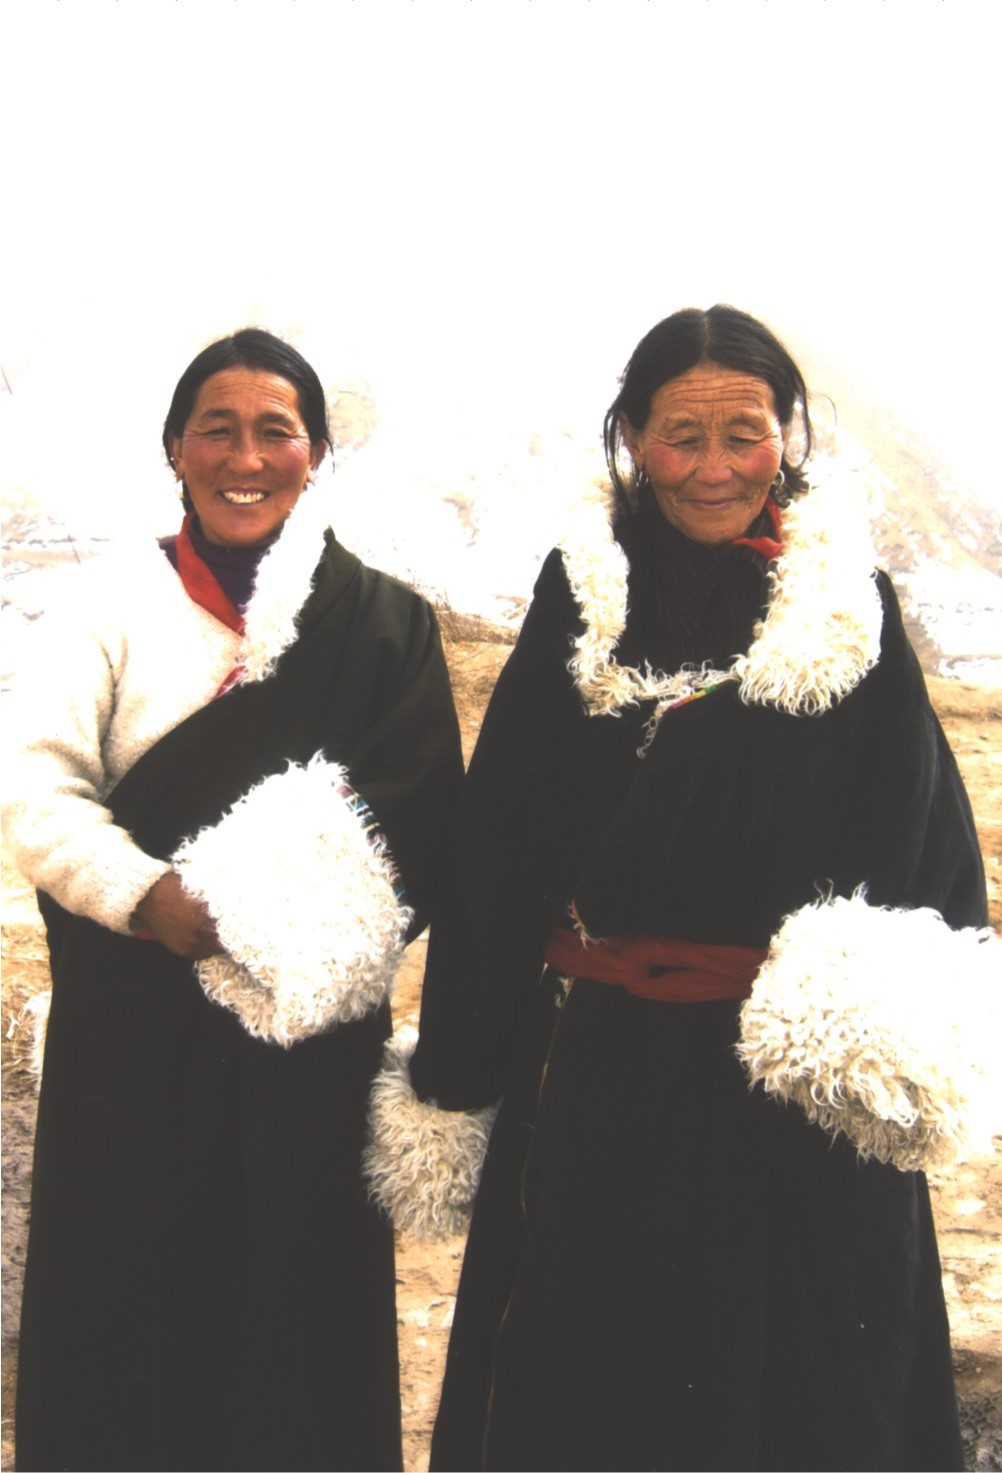 traditionaltibetanwomen.jpg